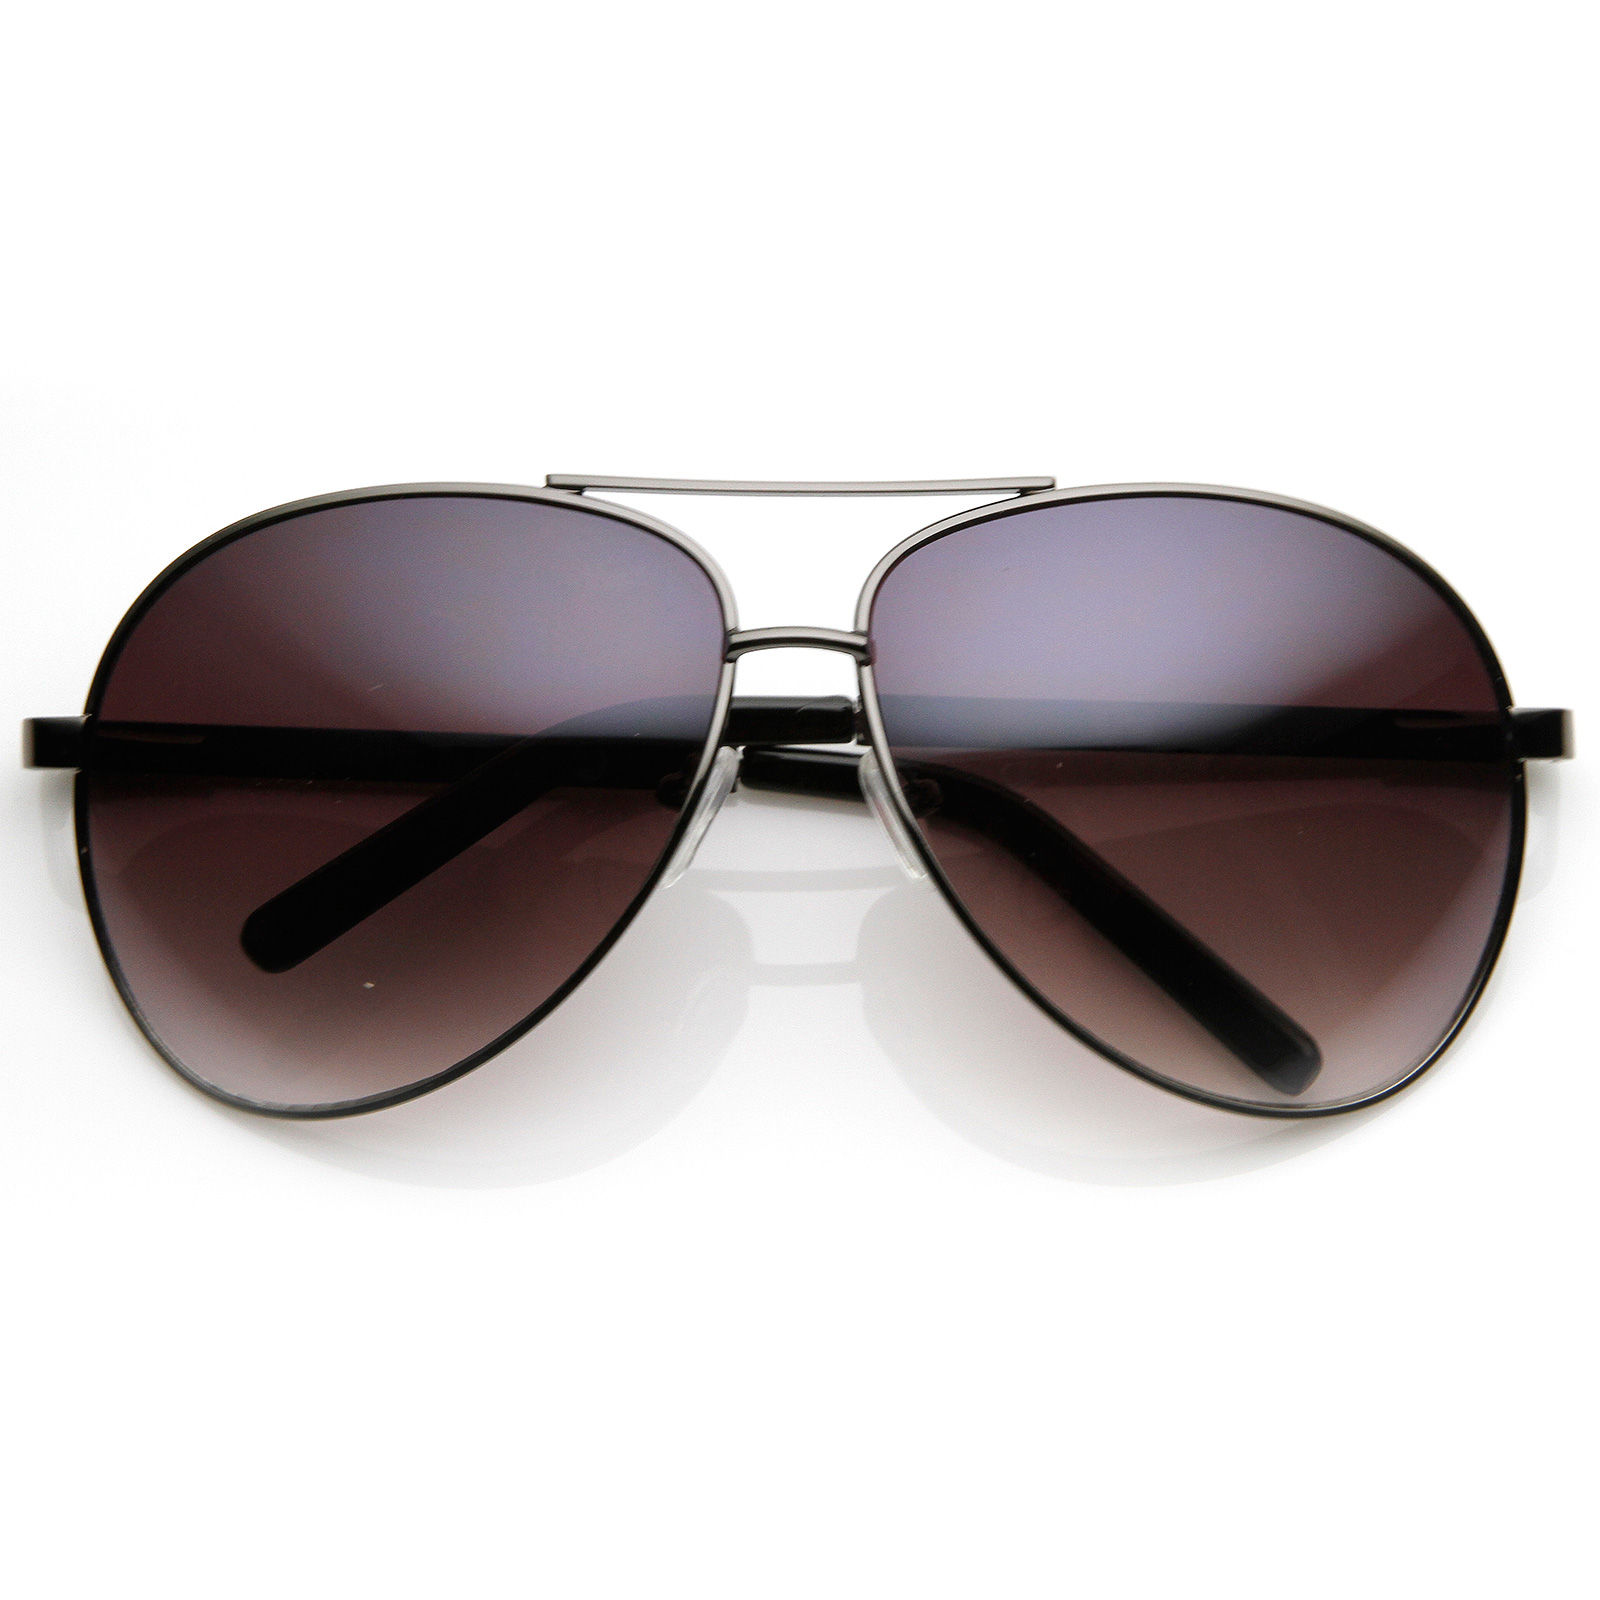 Hollywood-Fashion-Designer-Inspired-2-Tone-Large-Metal-Aviator-Sunglasses-1508